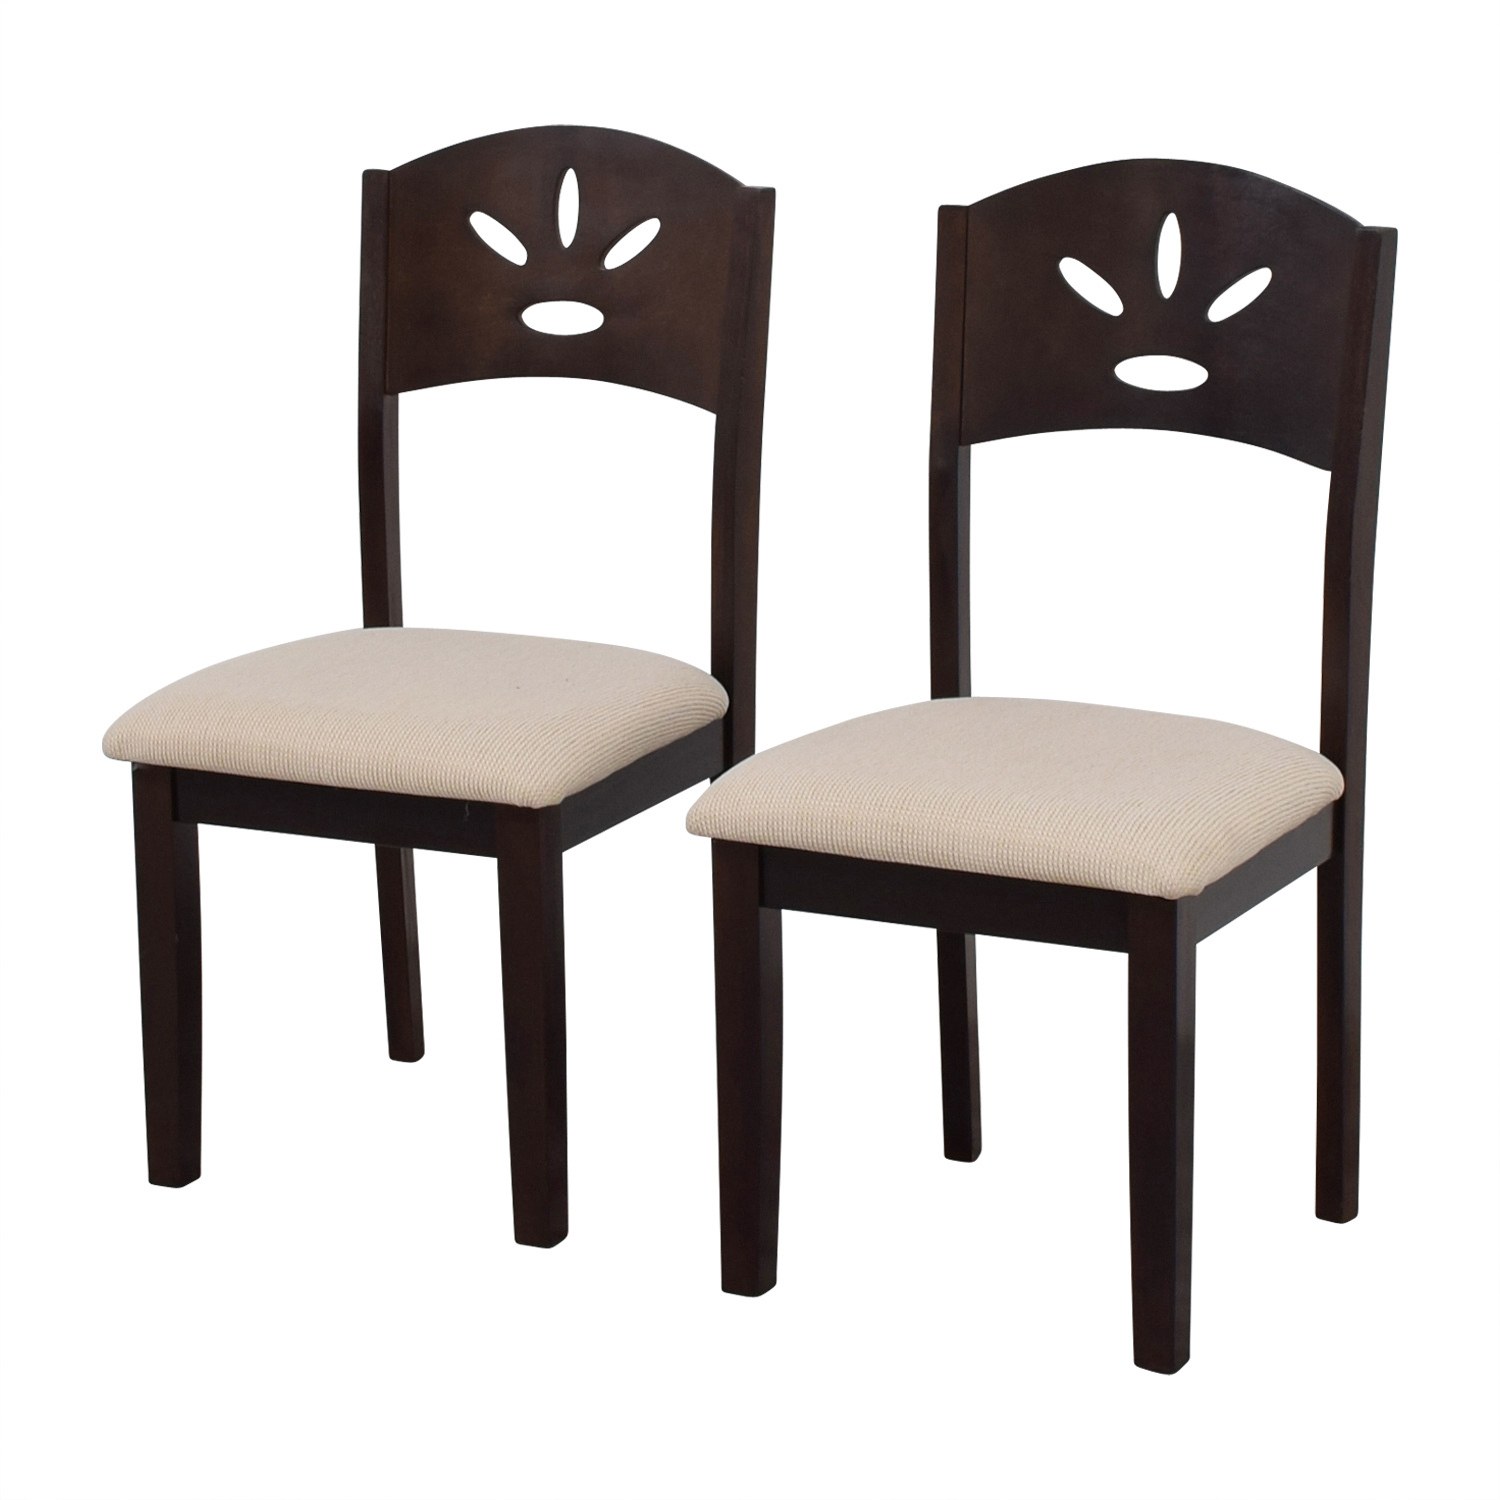 buy Off White and Wood Dining Chairs Chairs